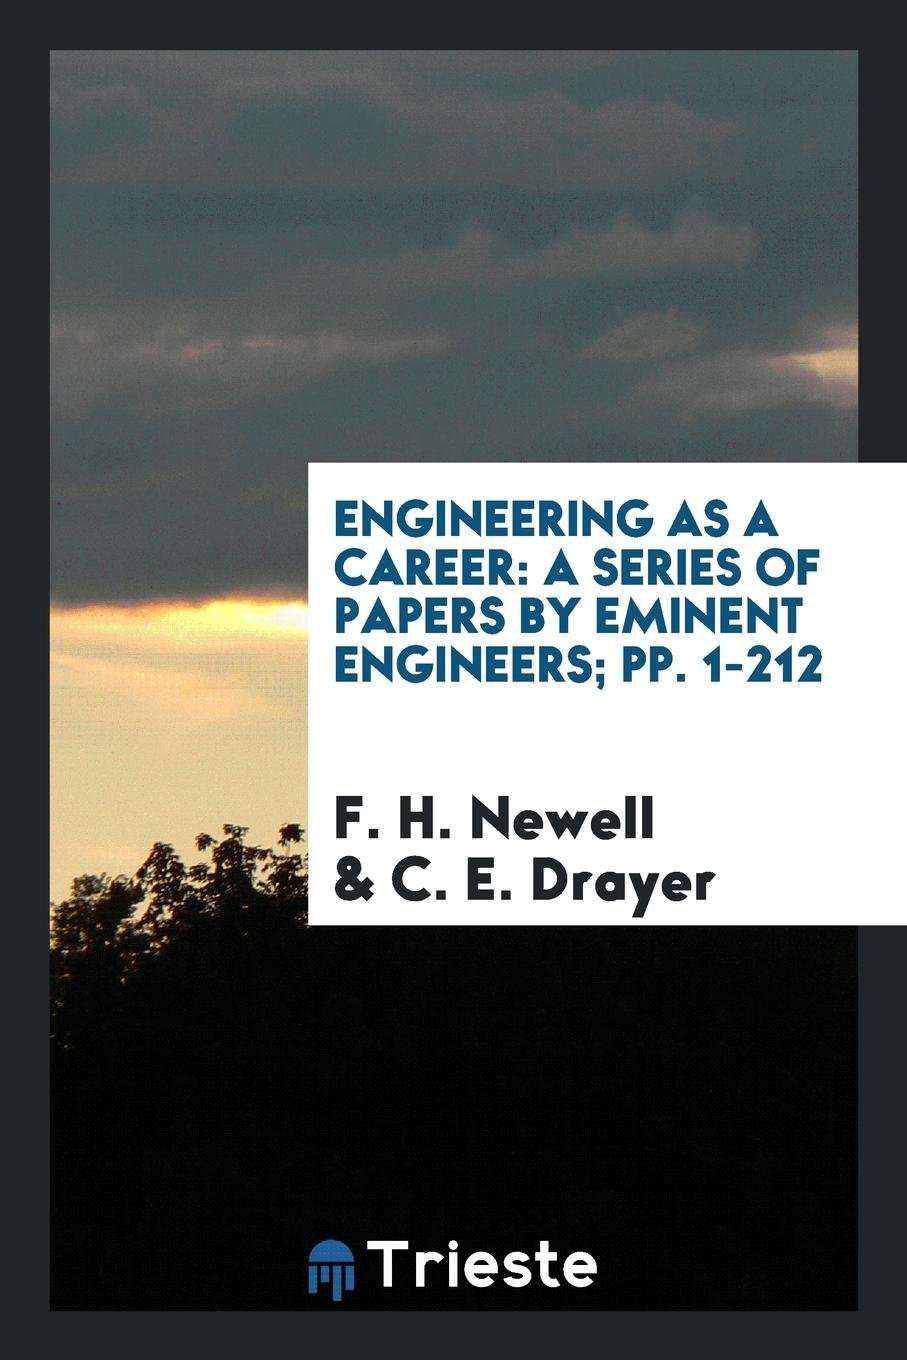 Engineering as a Career: A Series of Papers by Eminent Engineers; pp. 1-212 PDF